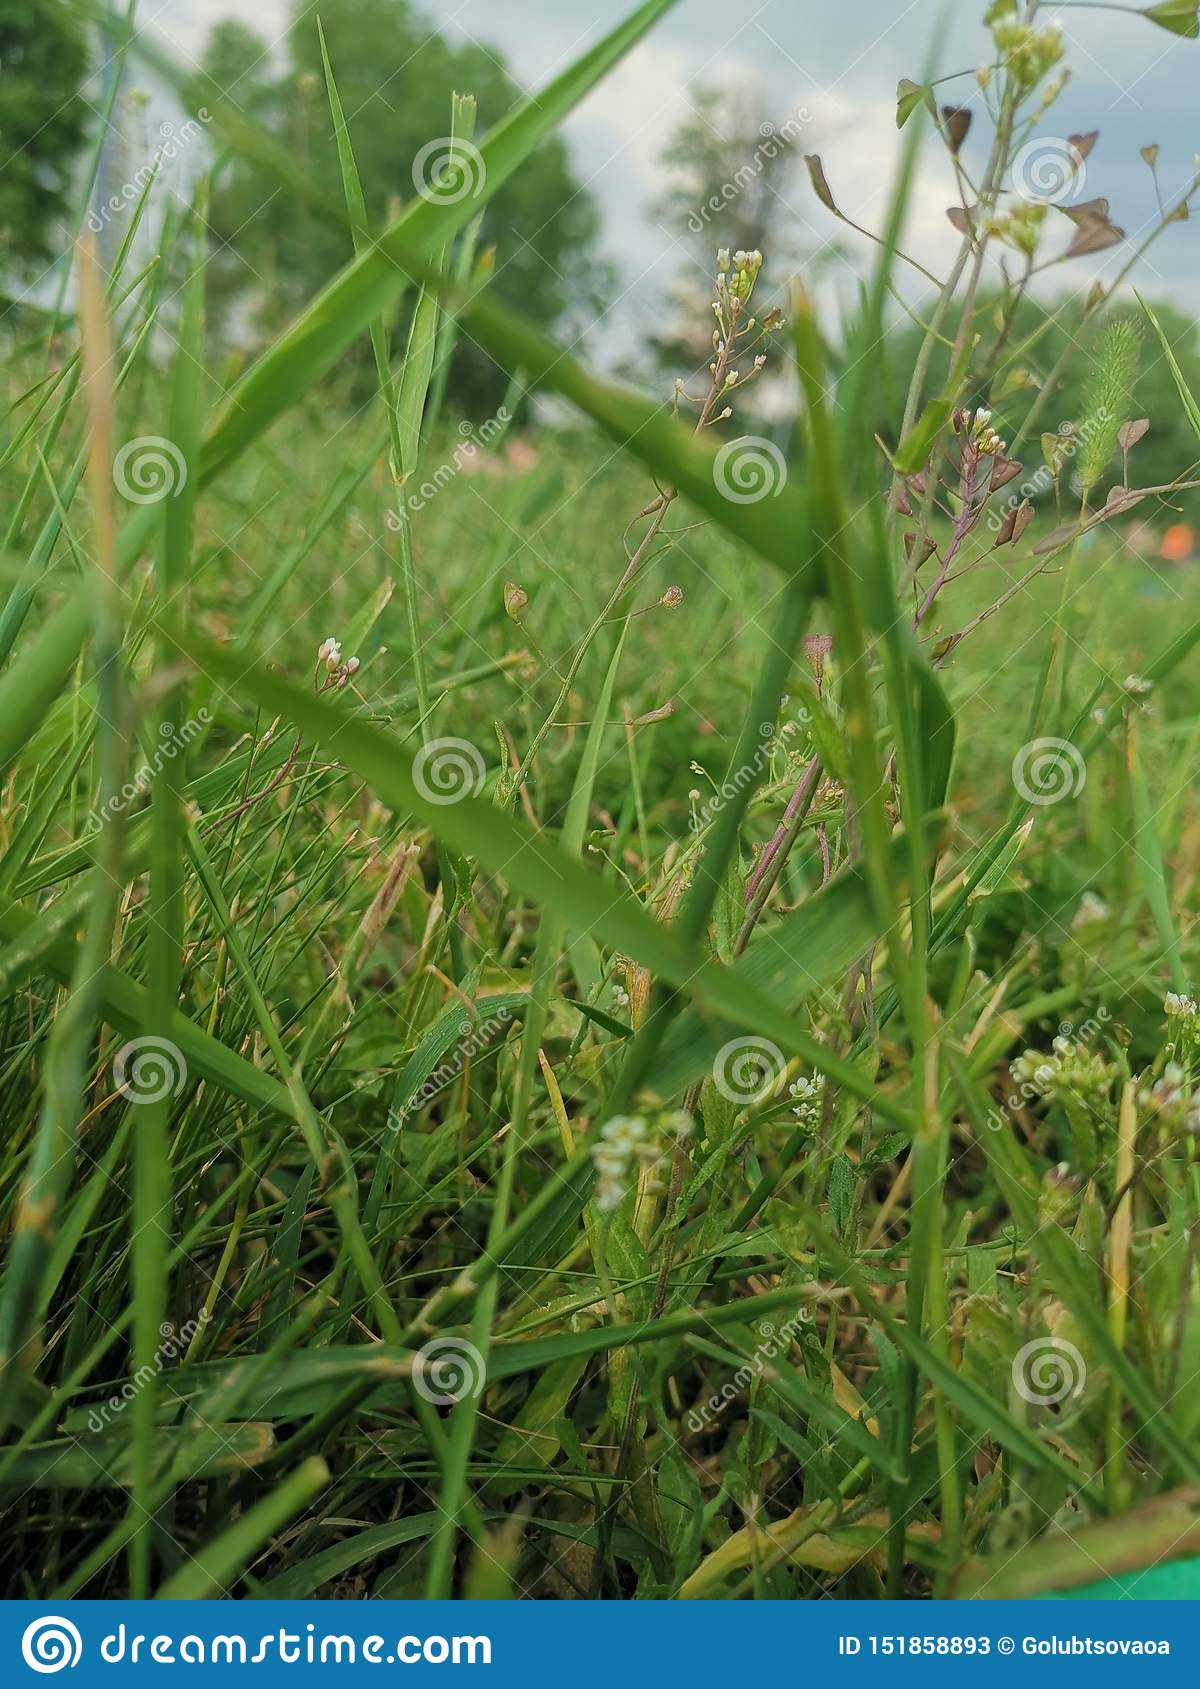 Green Grass In The Sunny Summer Of 2019 Russia